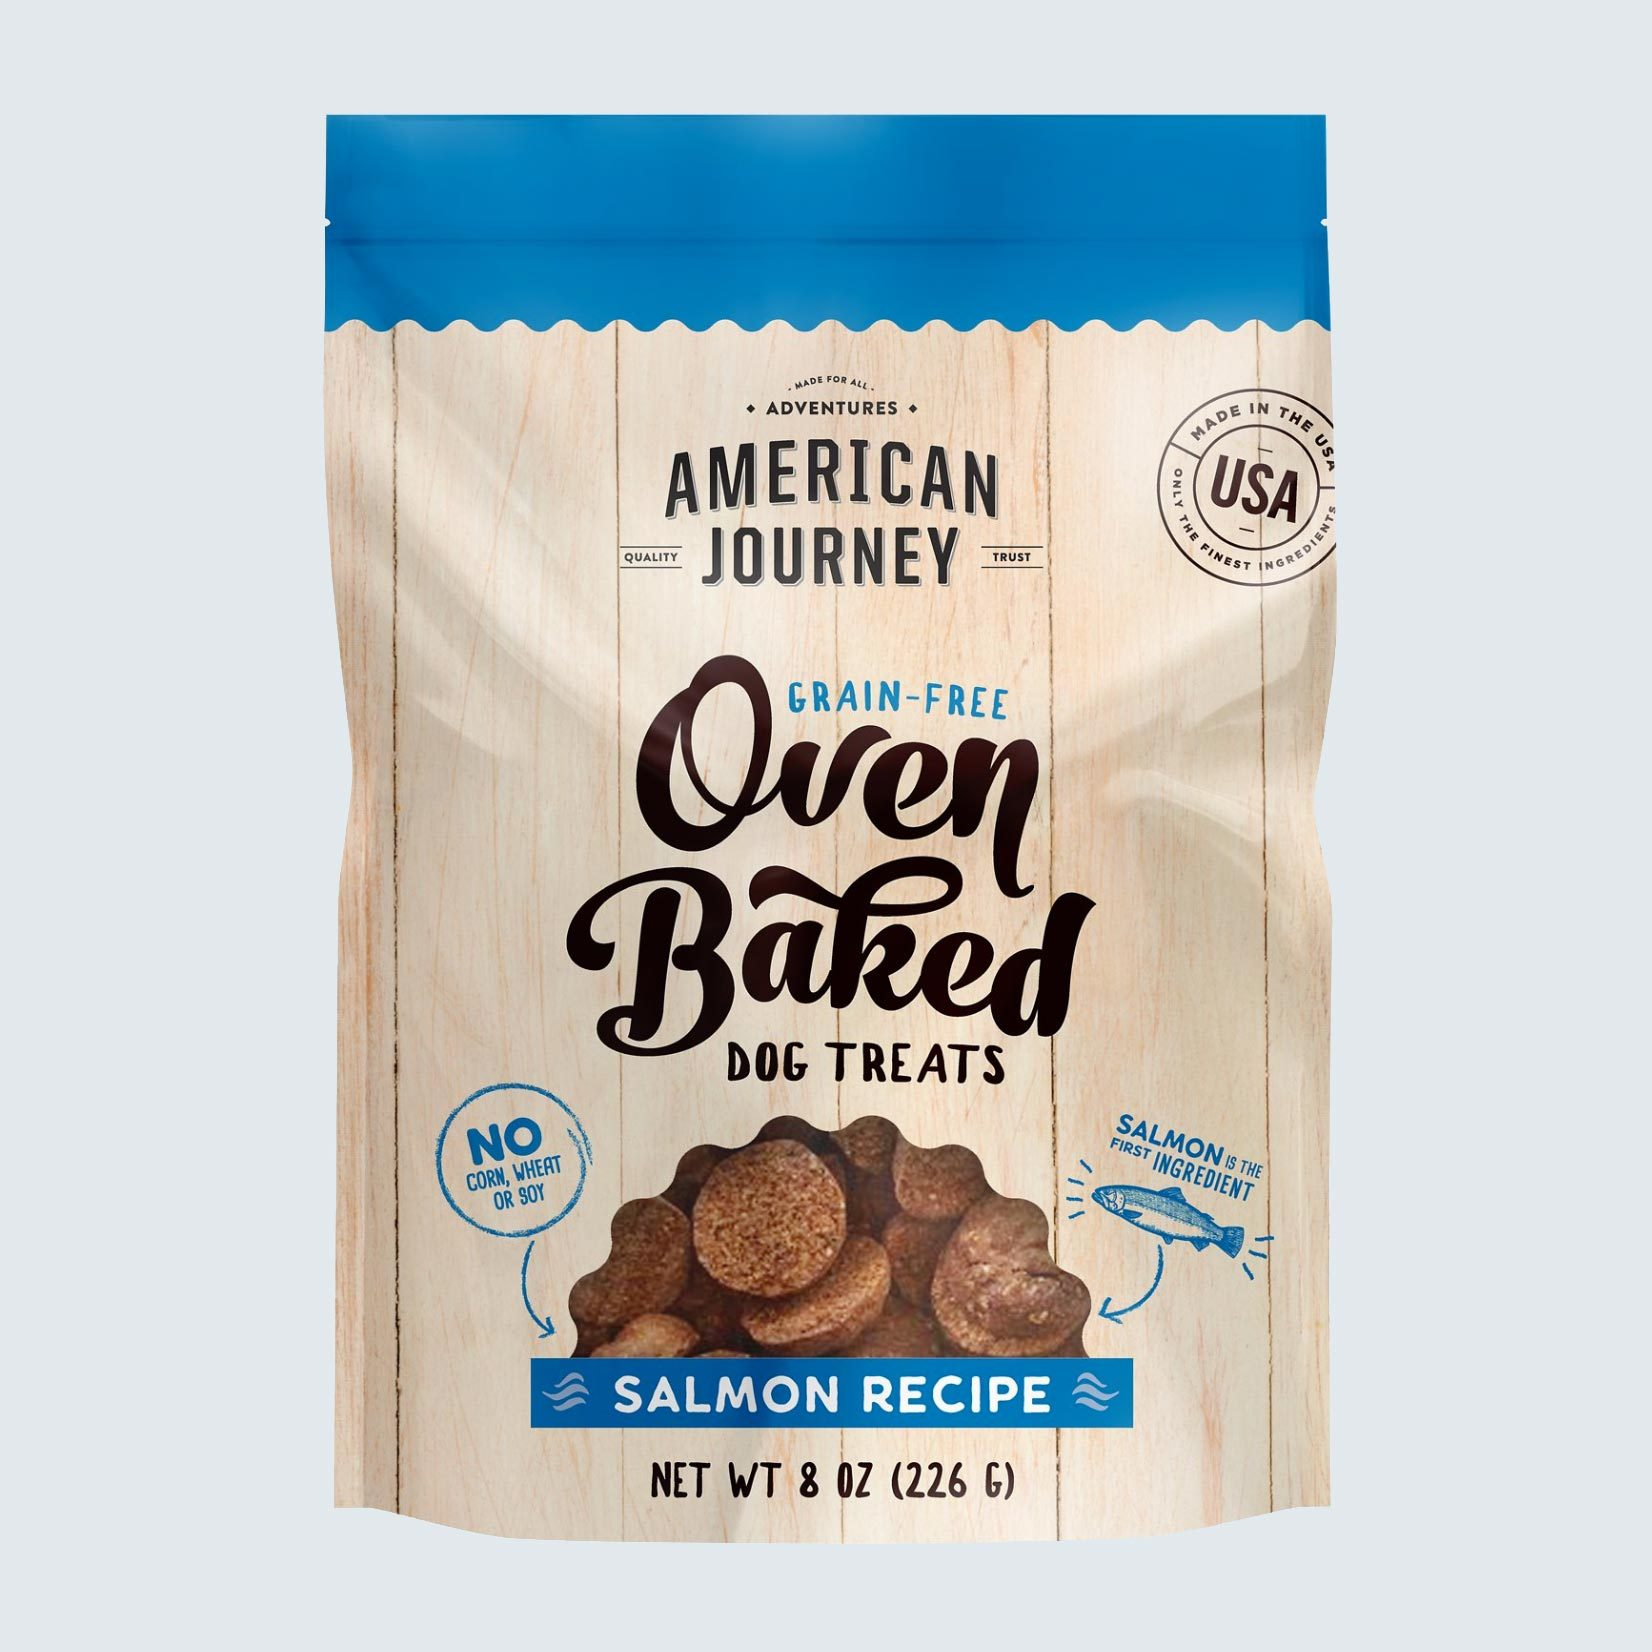 American Journey Salmon Recipe Grain-Free Oven-Baked Biscuit Dog Treats